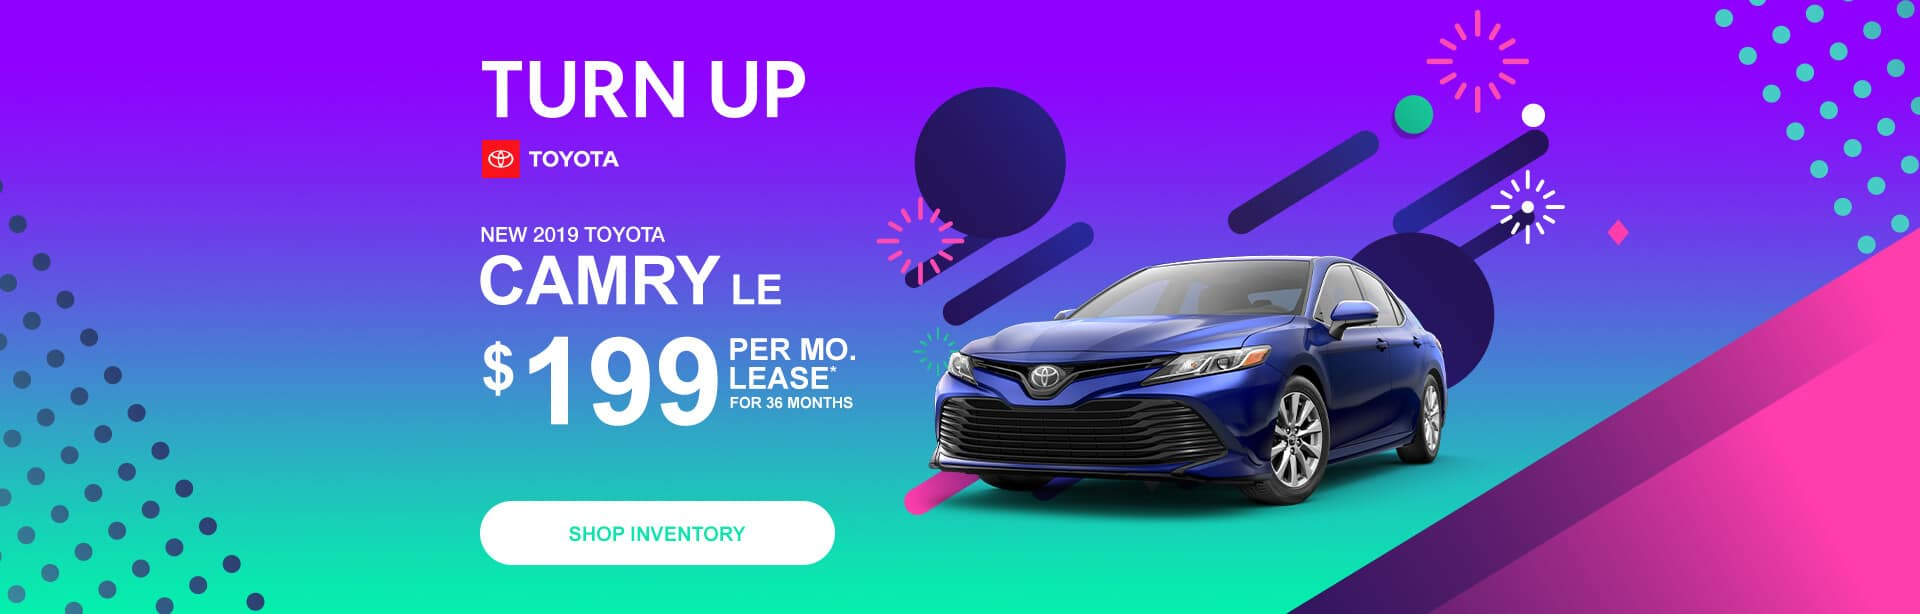 Toyota Camry Lease Special in Columbus, Indiana.